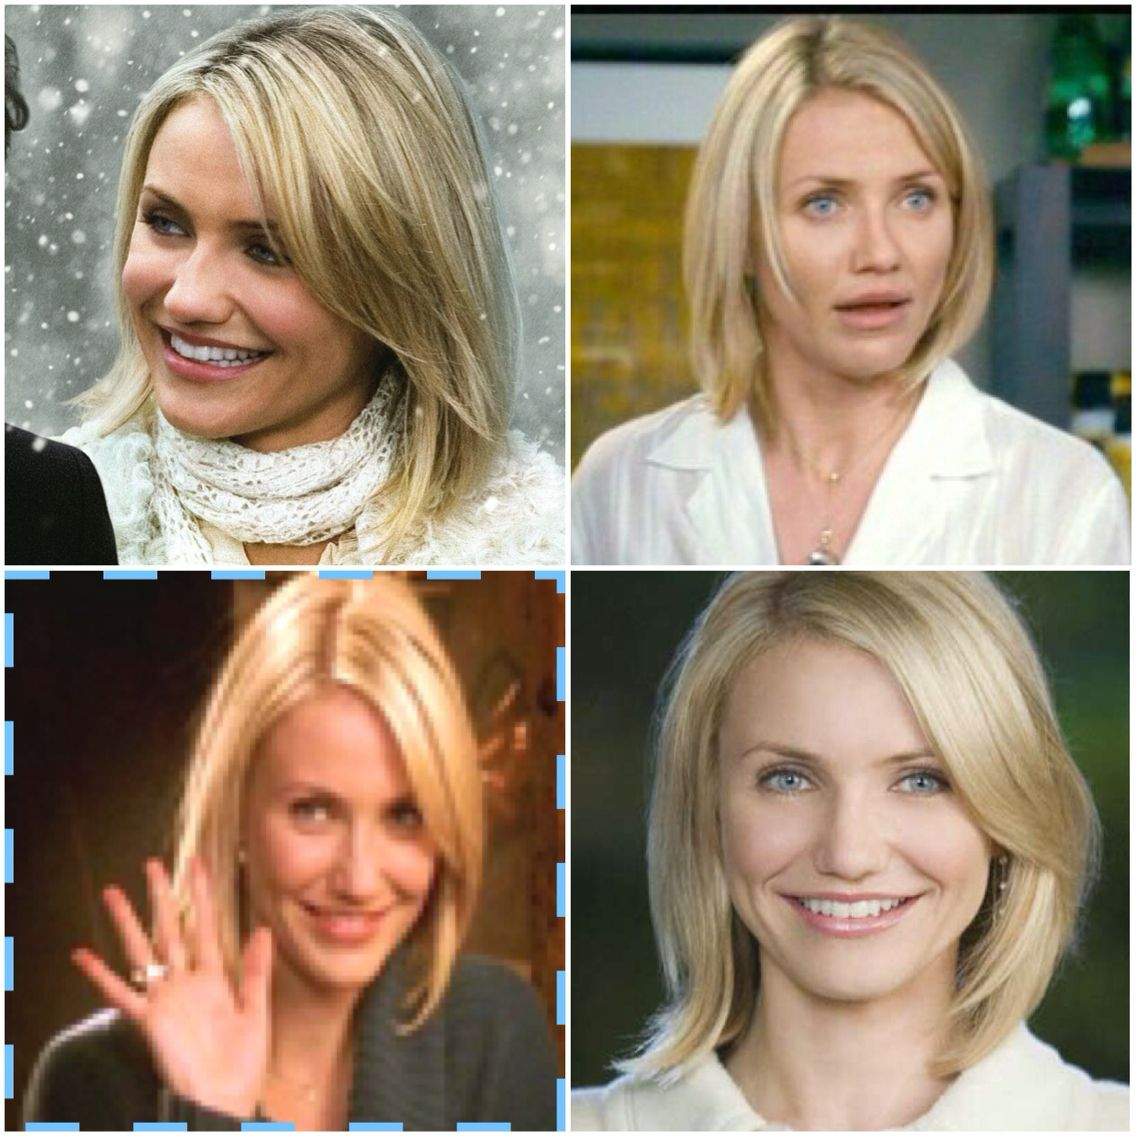 Cameron Diaz Mid Length Hair Style The Holiday Cameron Diaz Short Hair Cameron Diaz Hair Hair Styles